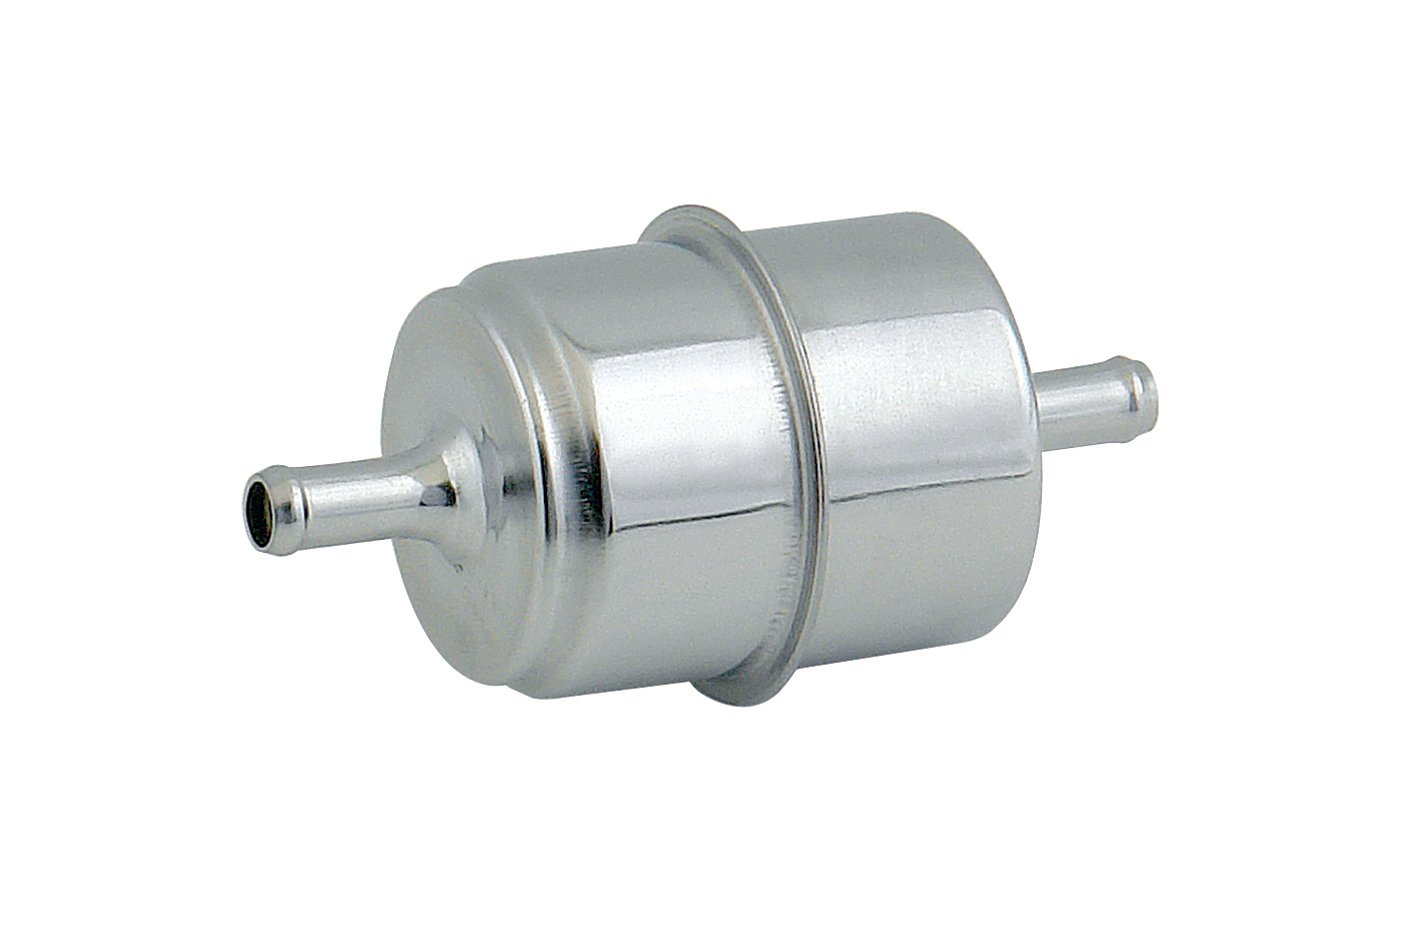 9745 - Chrome Fuel Filter - Fits 5/16